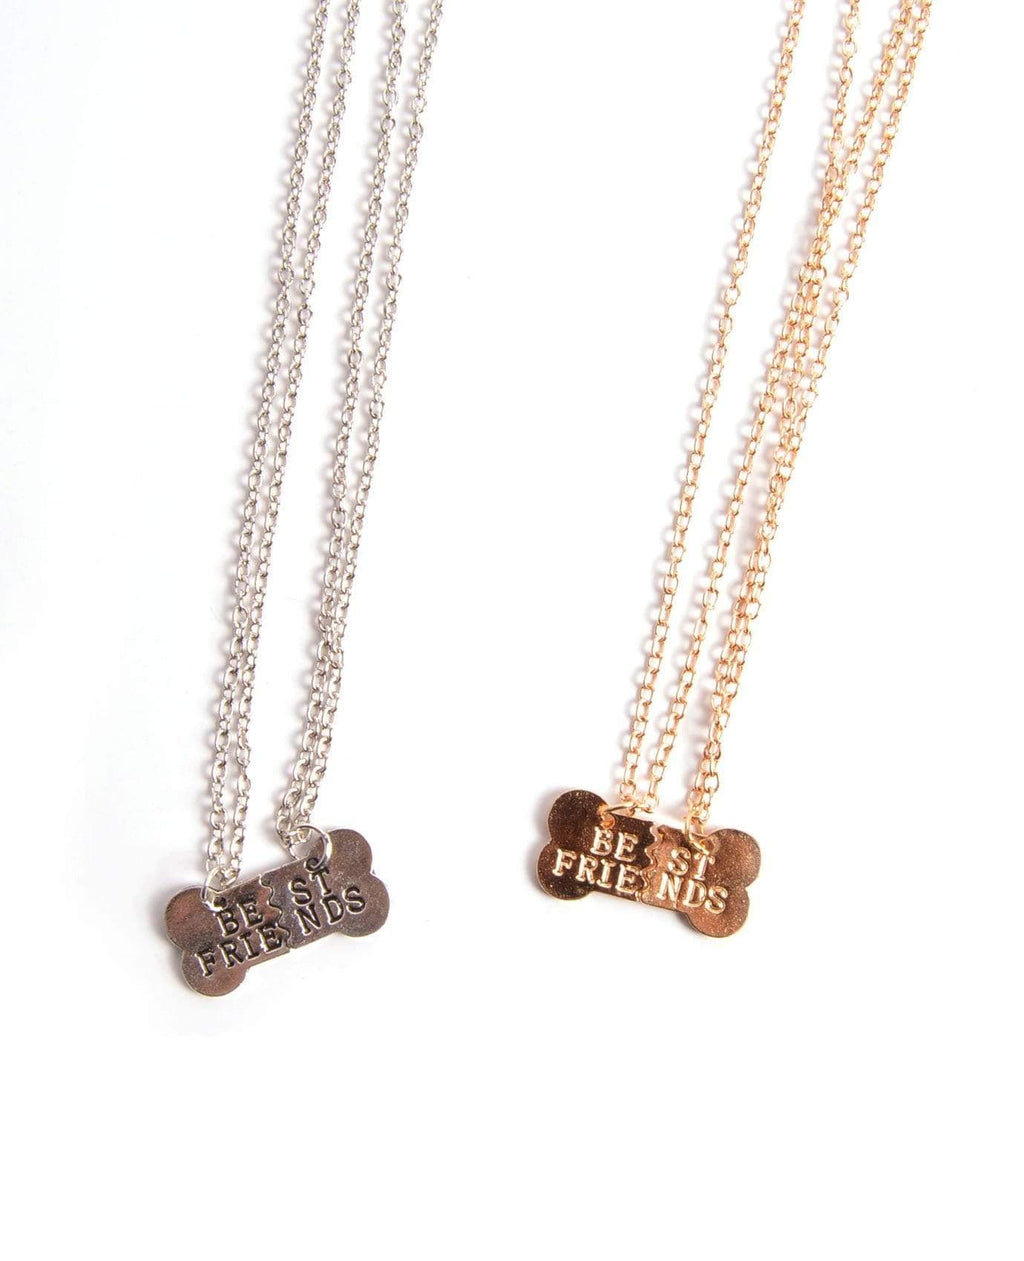 Forever Best Friends Necklace- 2 Variants